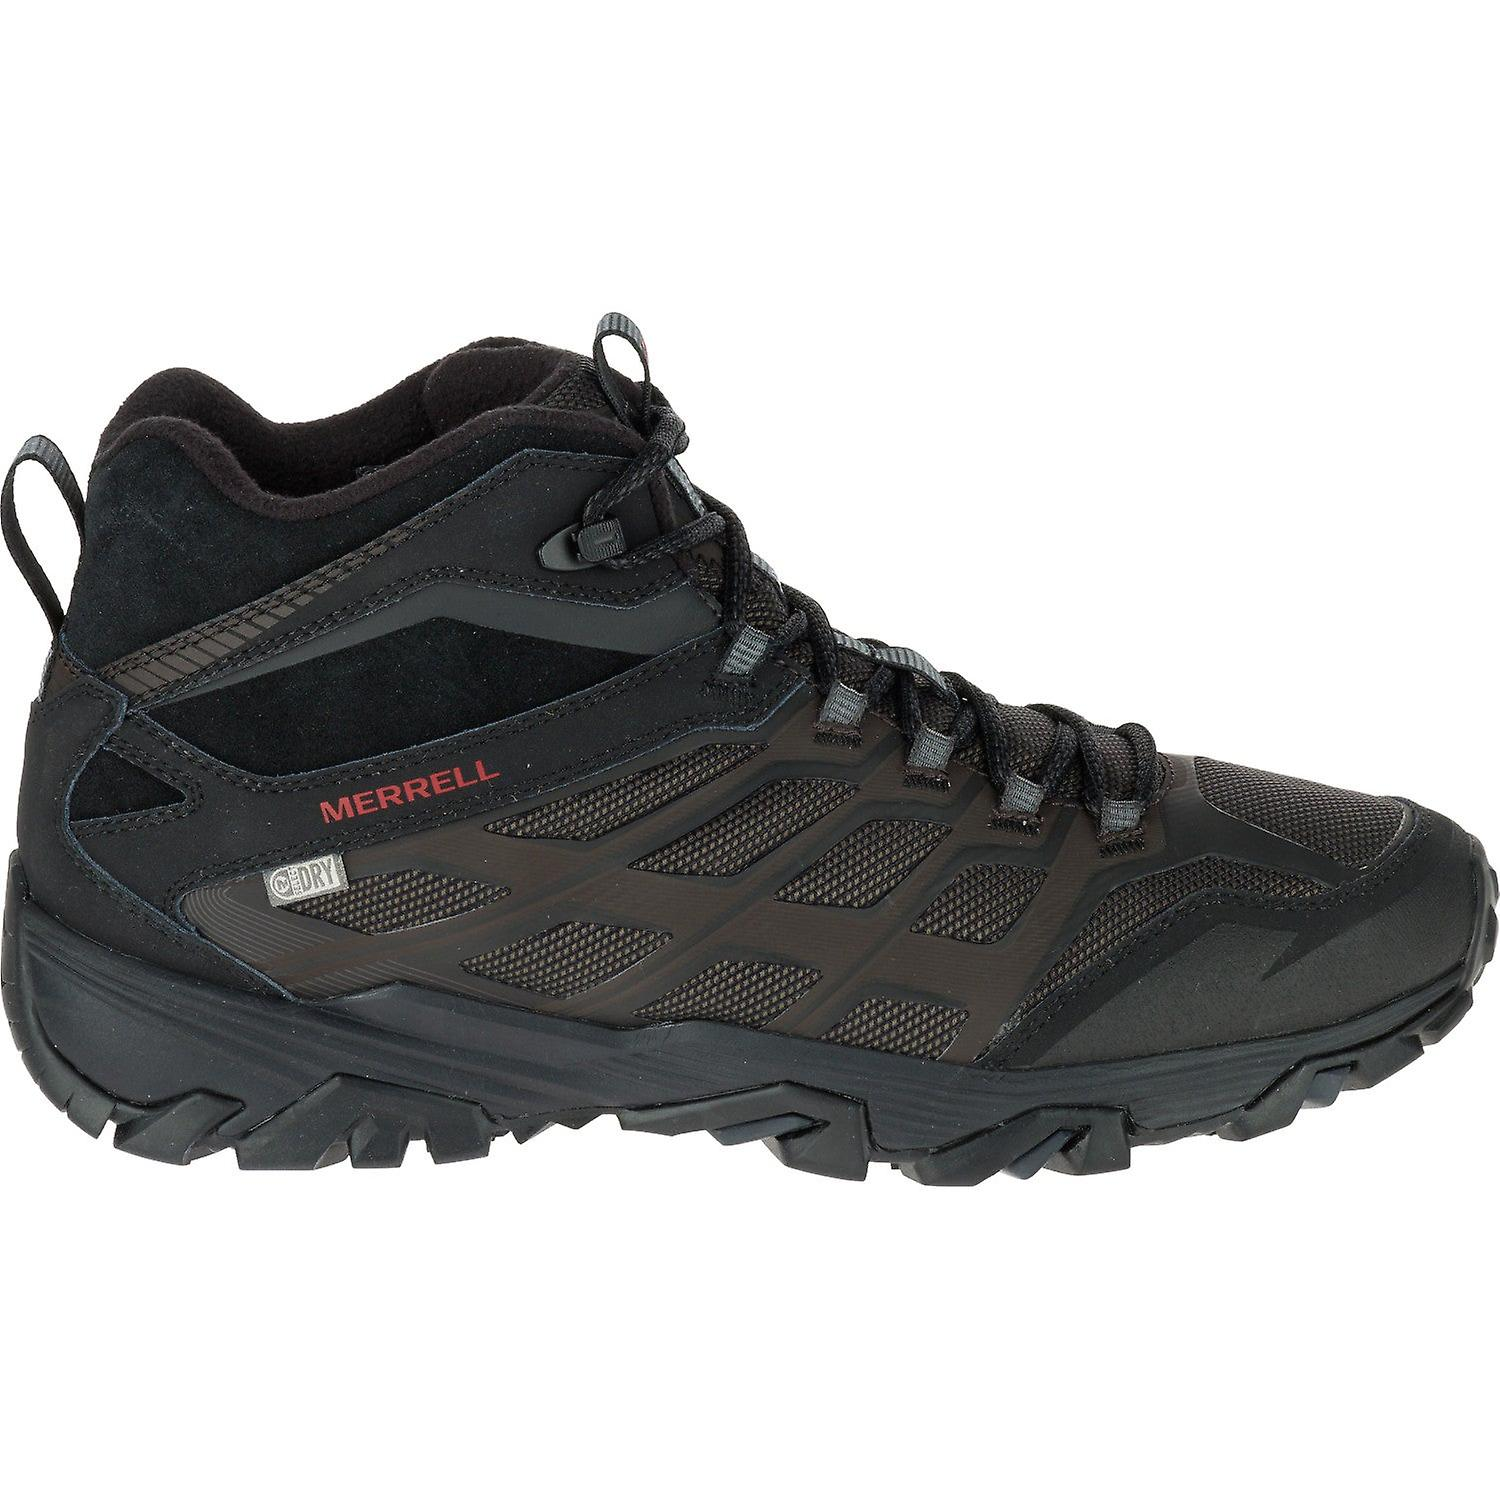 Merrell Moab FST Ice Plus Thermo Walking Shoes